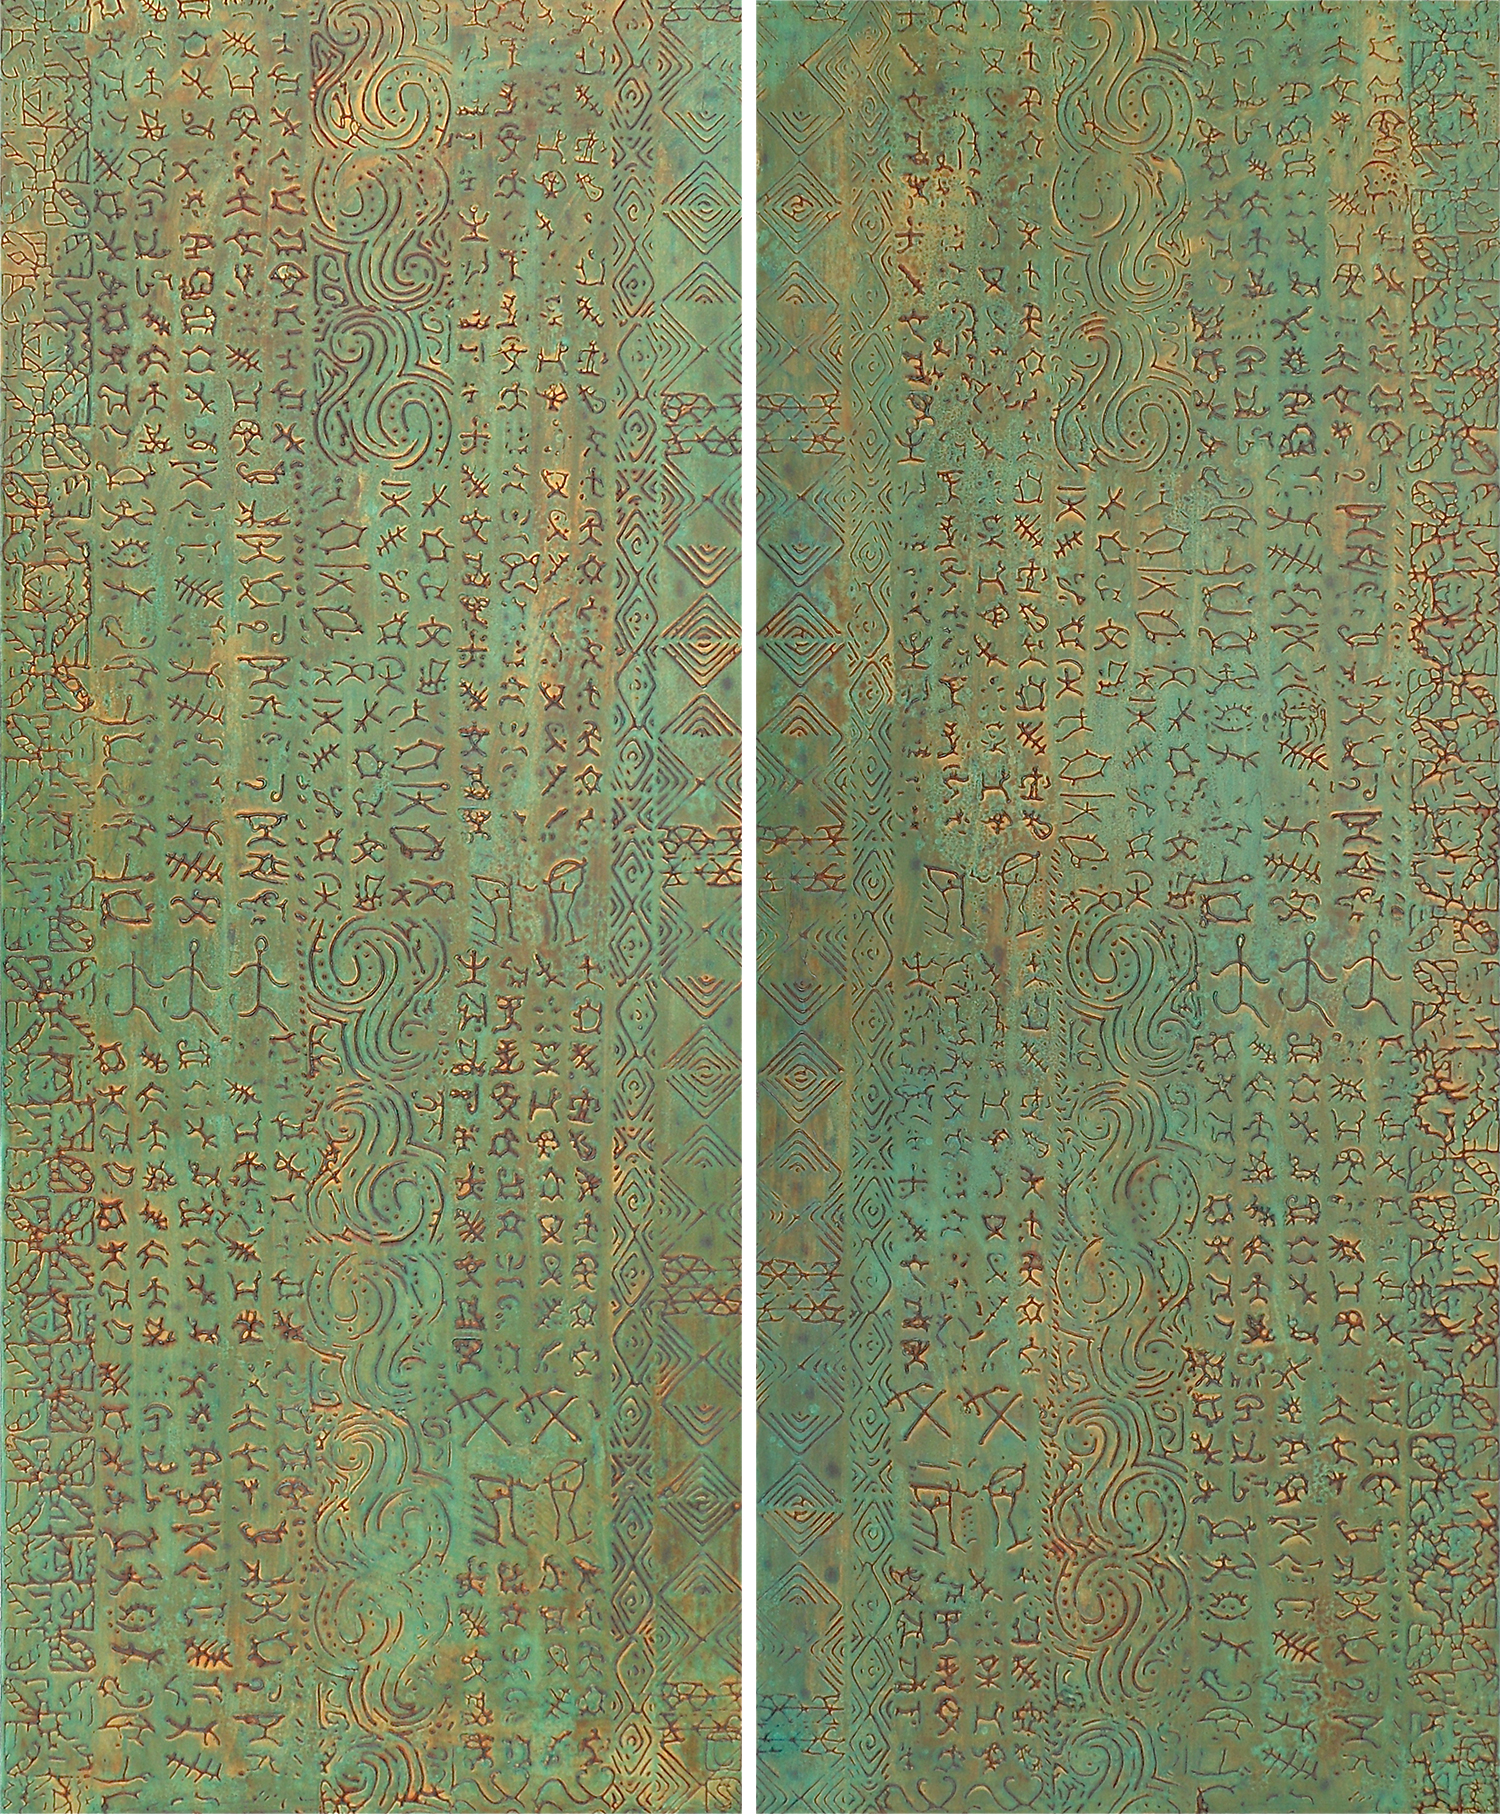 """Doors With a Past 1 & 2 @ 20"""" W x 48"""" H x 2"""" D Acrylic & oil on archival board"""